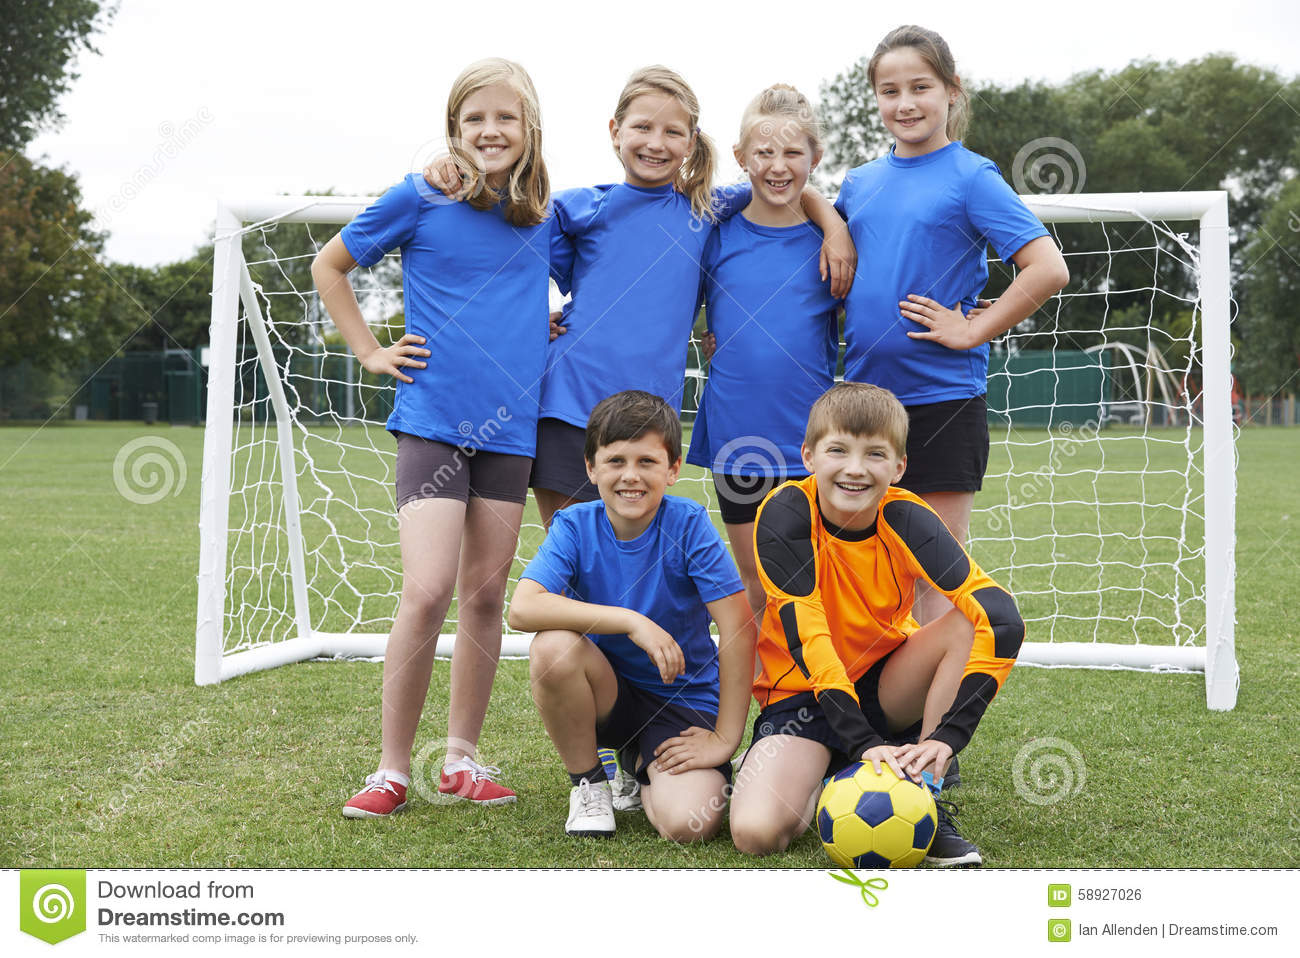 Boys And Girls In Elementary School Soccer Team Stock Photo - Image: 58927026